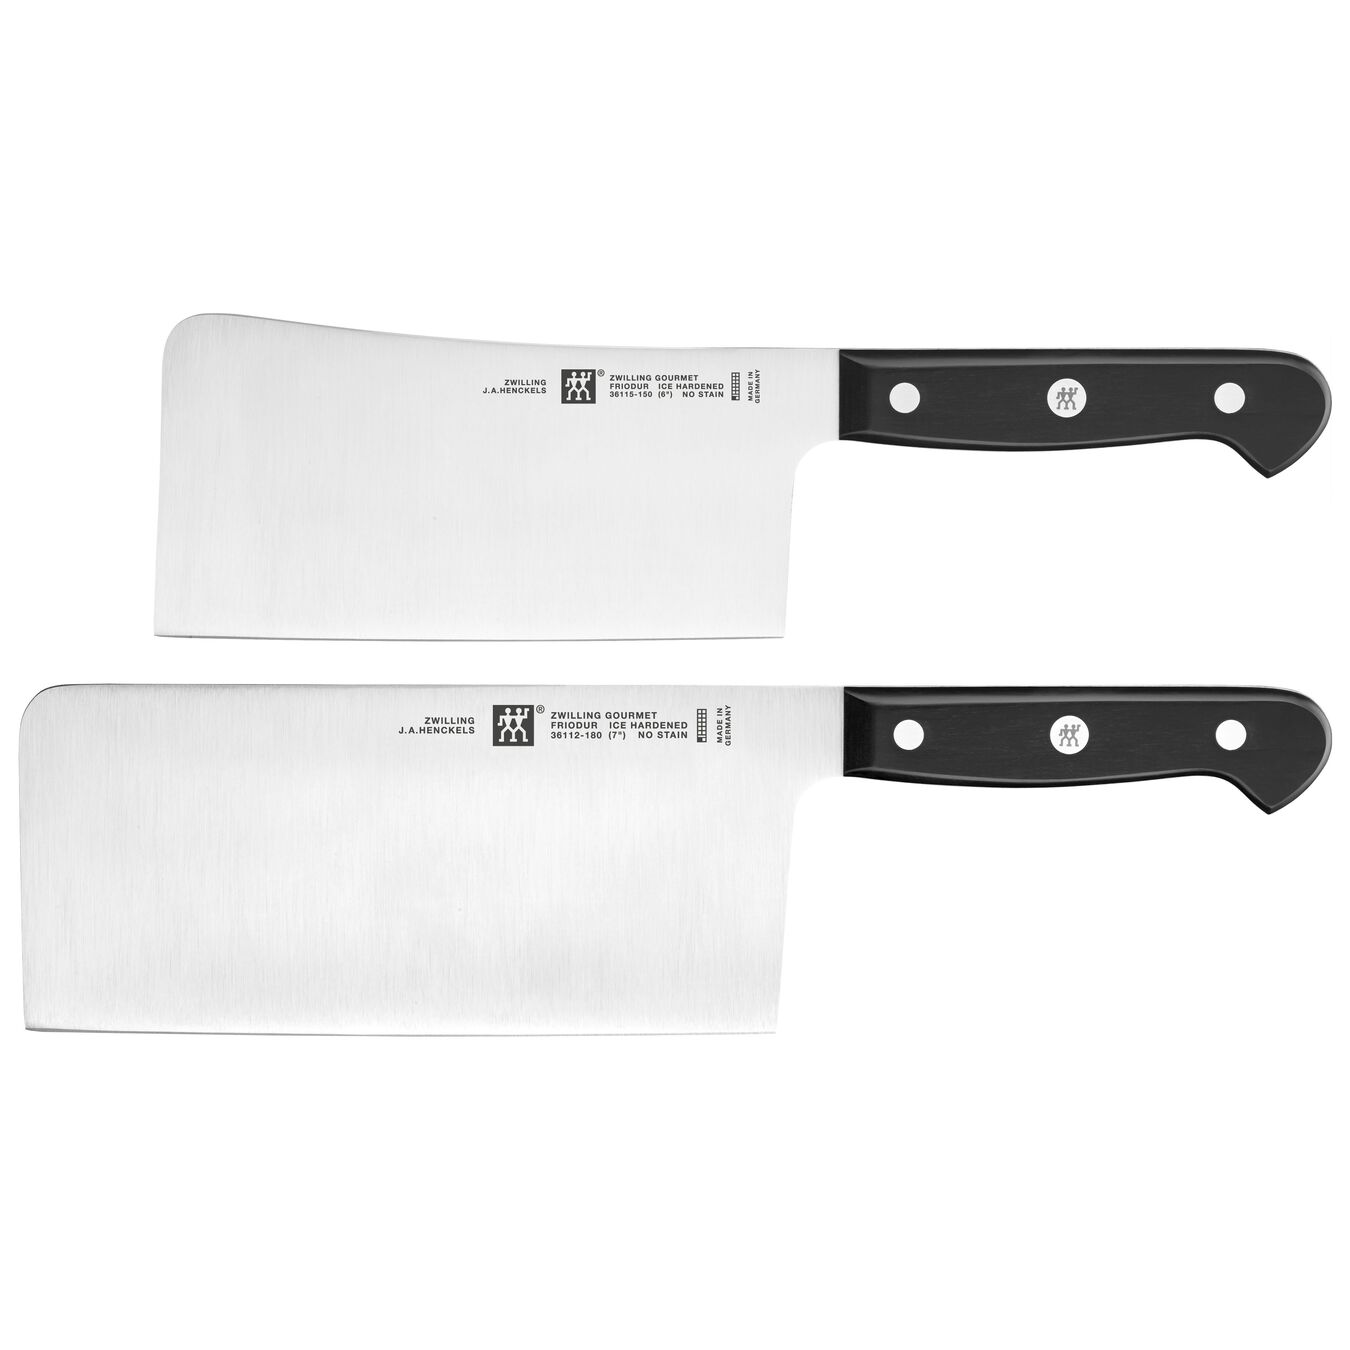 2 Piece Knife set,,large 1